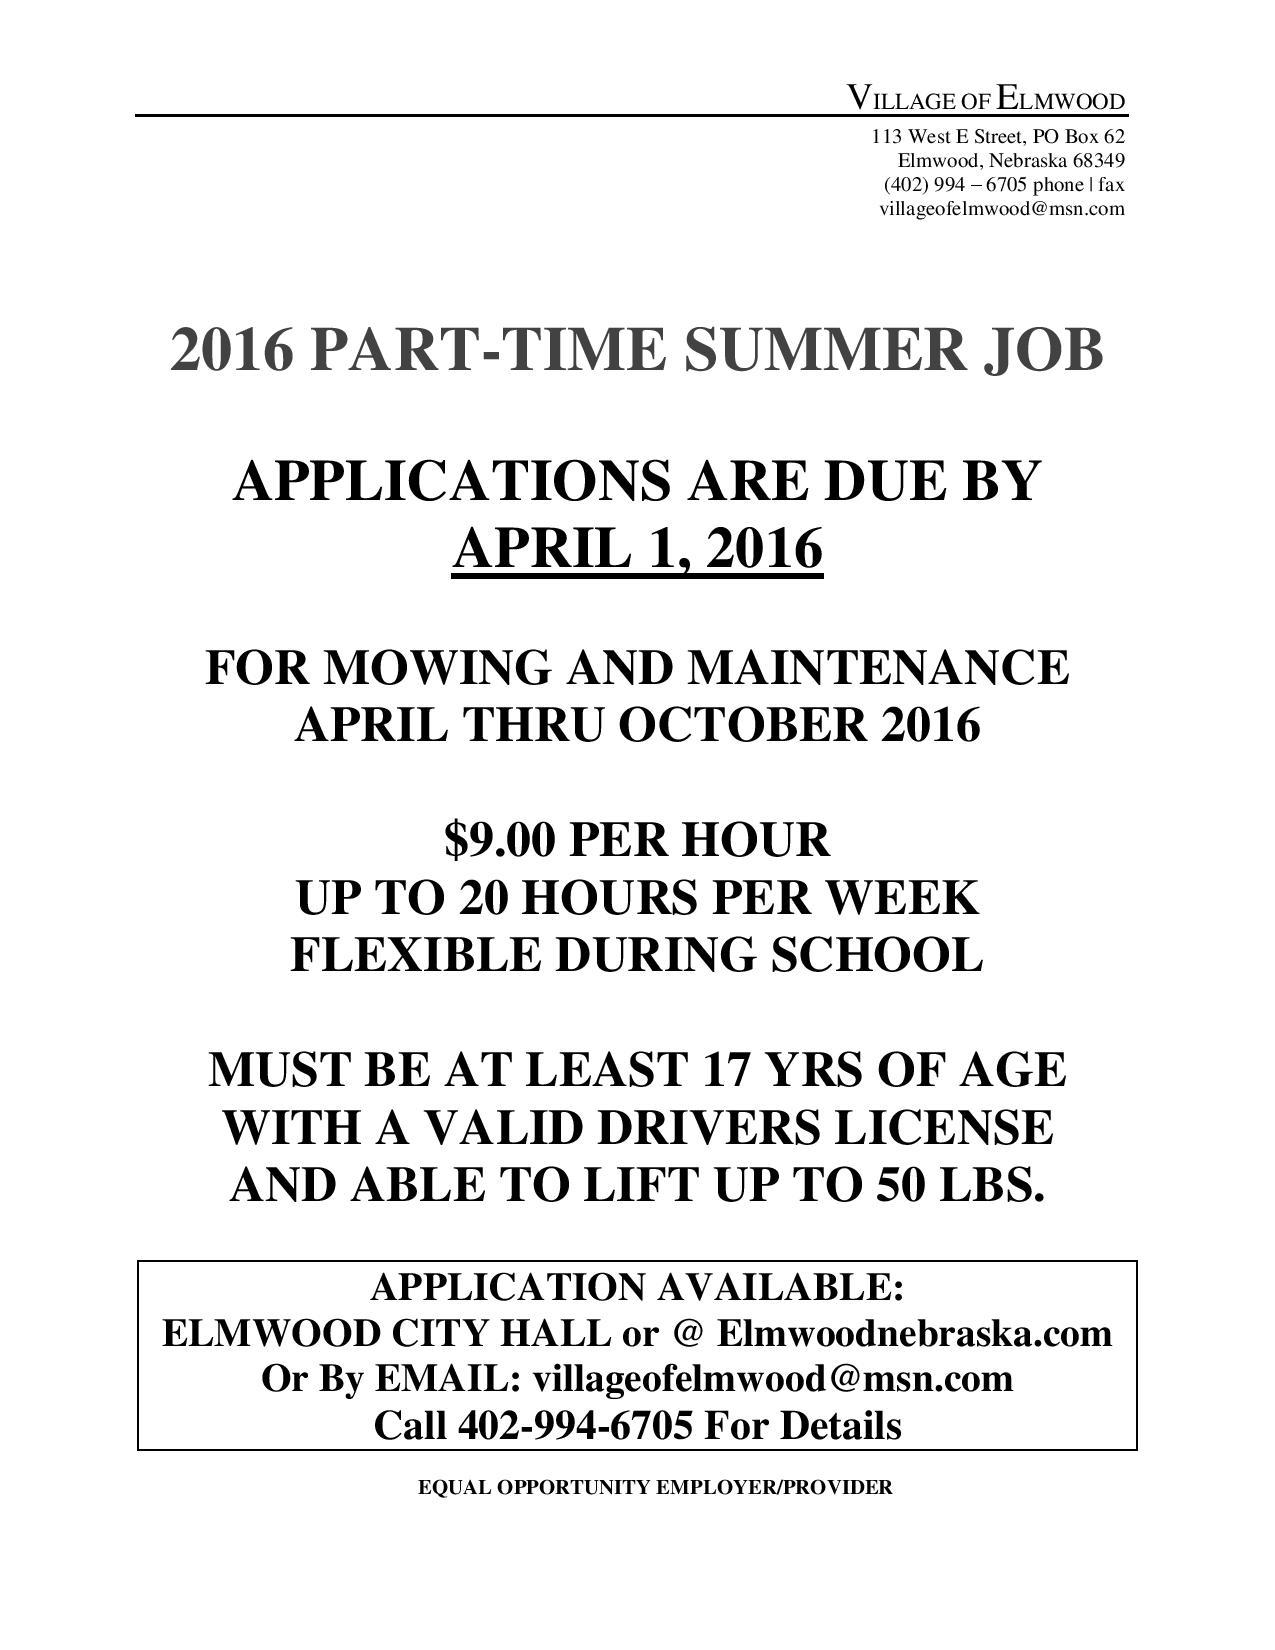 2016 Summer Job Notice page 001